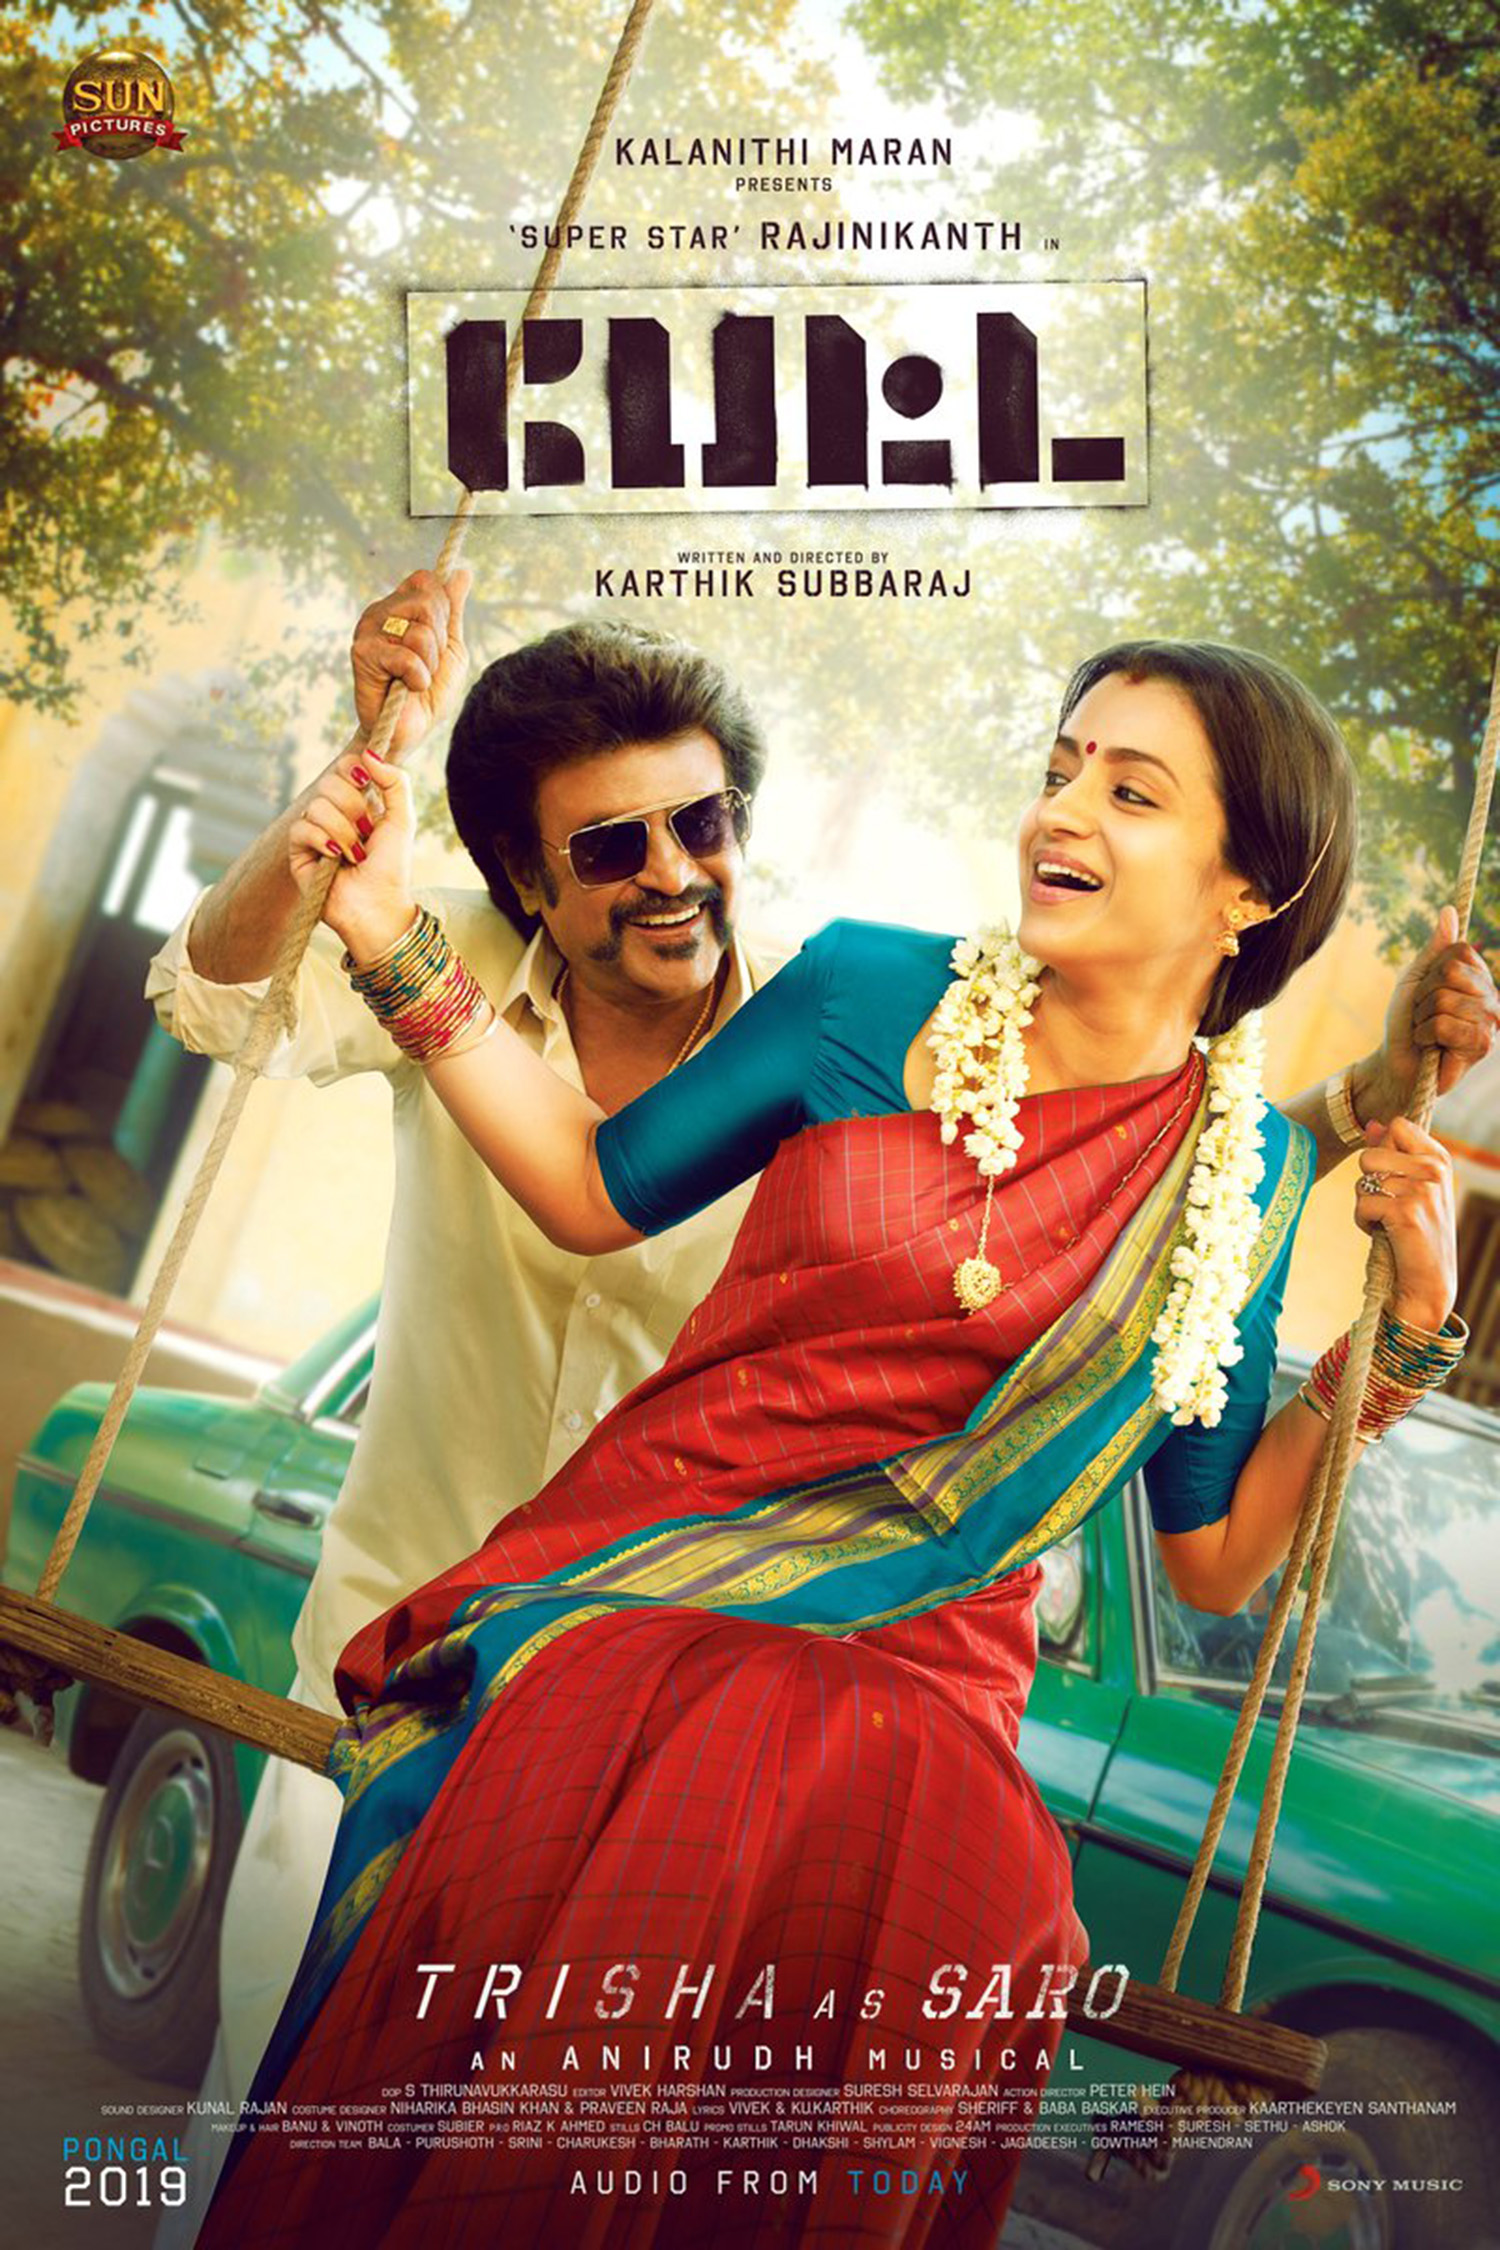 petta,petta character poster,trisha,trisha in petta,trisha as saro in petta,trisha character name in petta,rajinikanth and trisha in petta,trisha movie stills,rajinikanth,karthik subbaraj,vijay sethupathi,petta movie poster